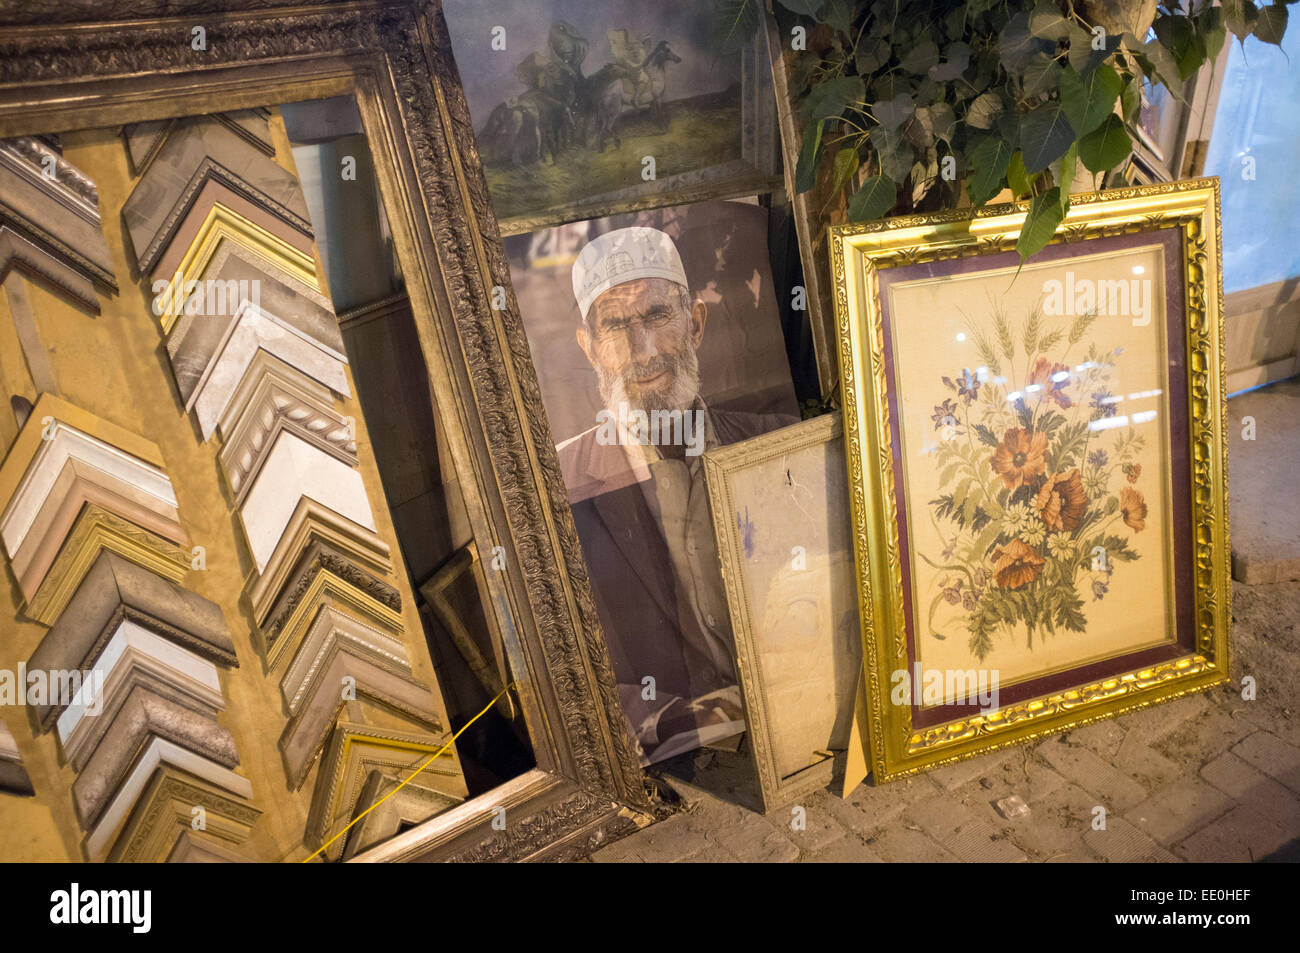 Framing Shop Stockfotos & Framing Shop Bilder - Alamy